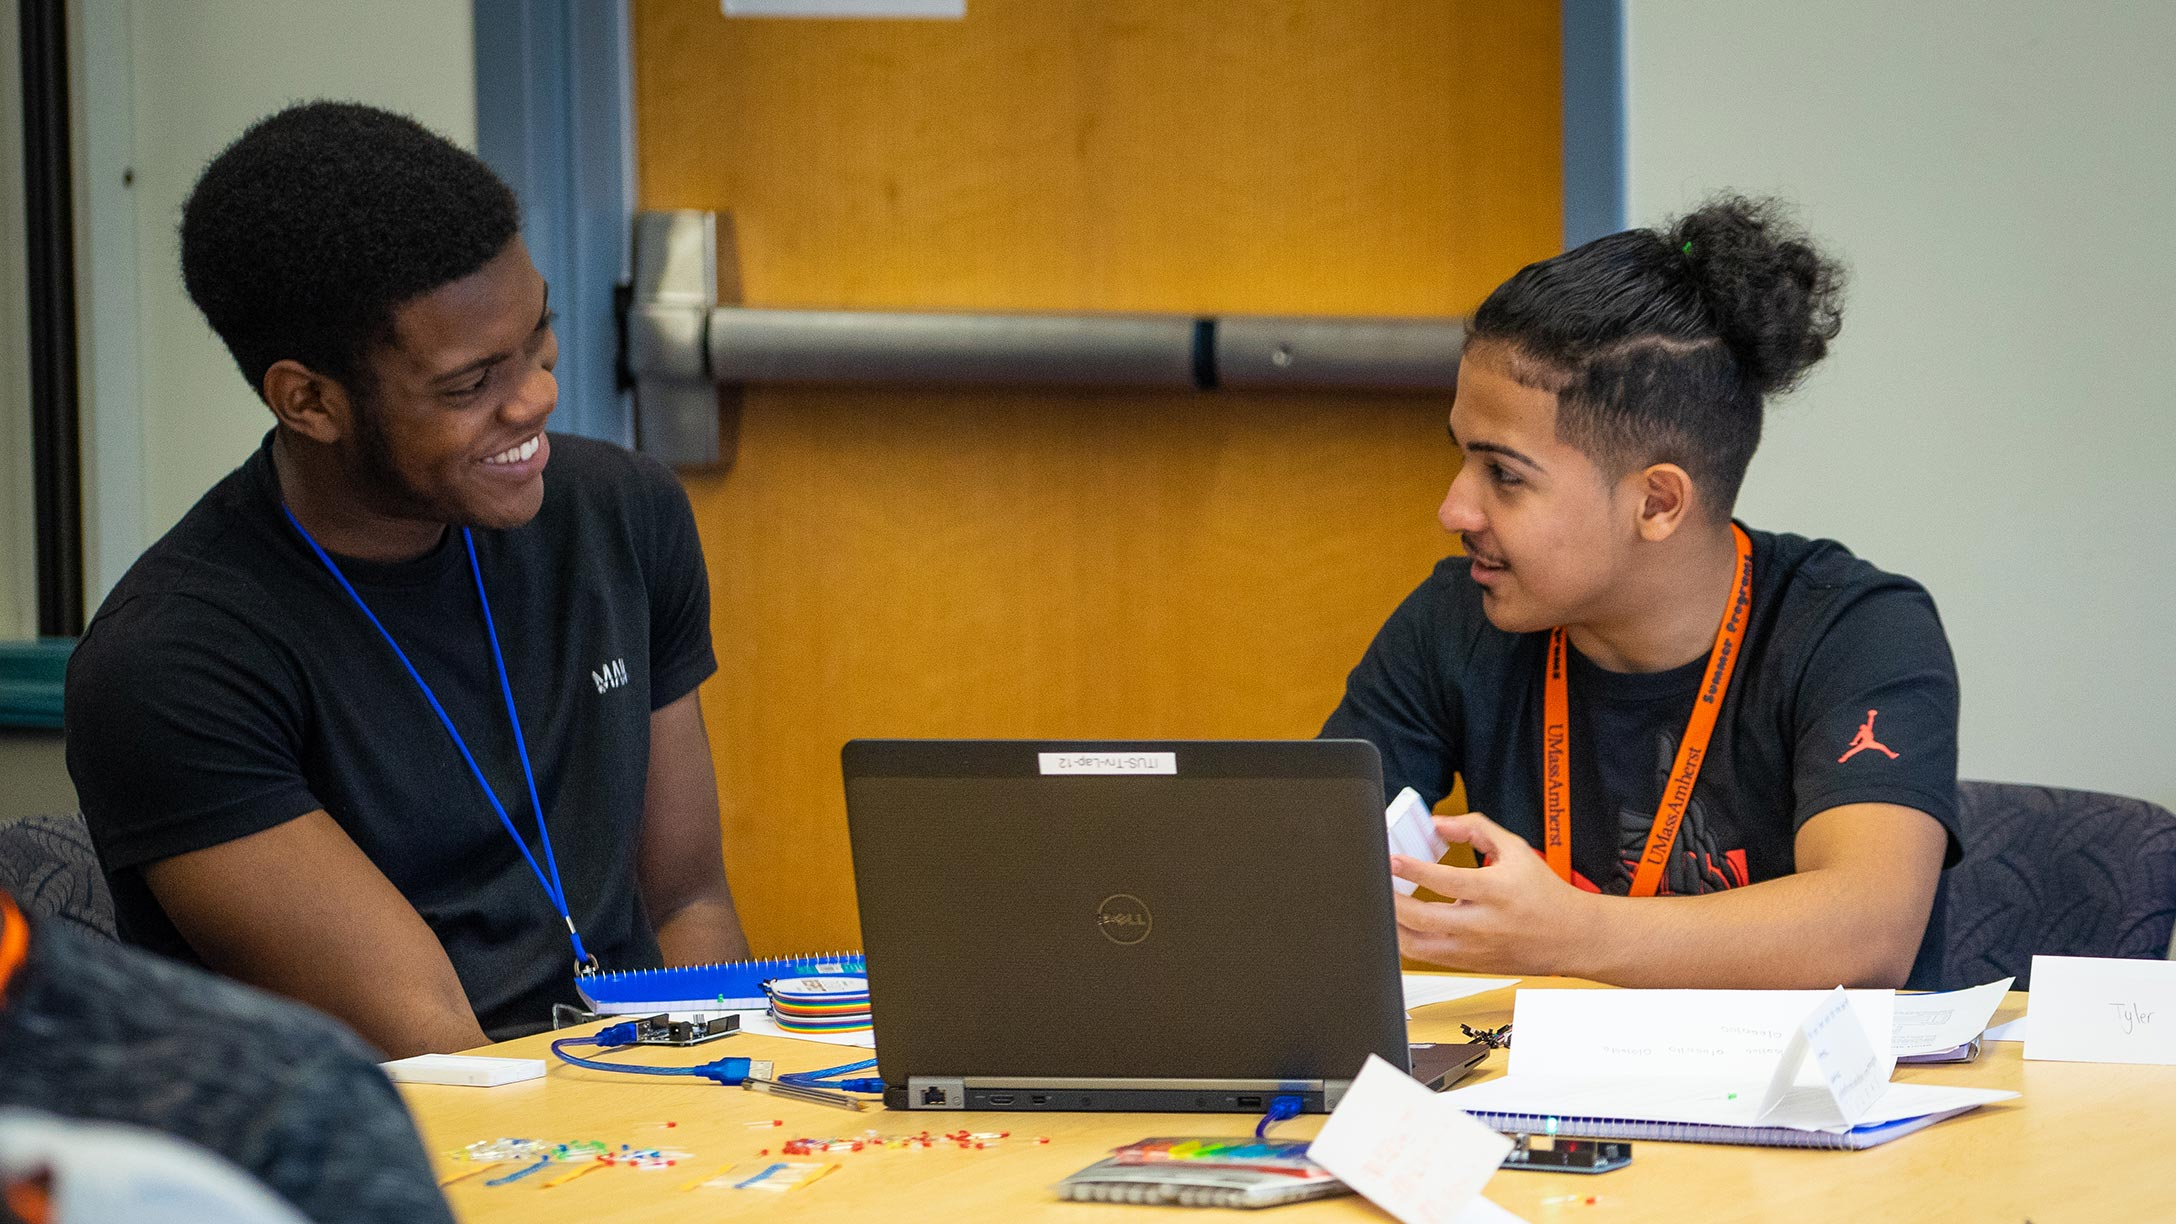 Two students participate in the Massenberg Summer STEM program